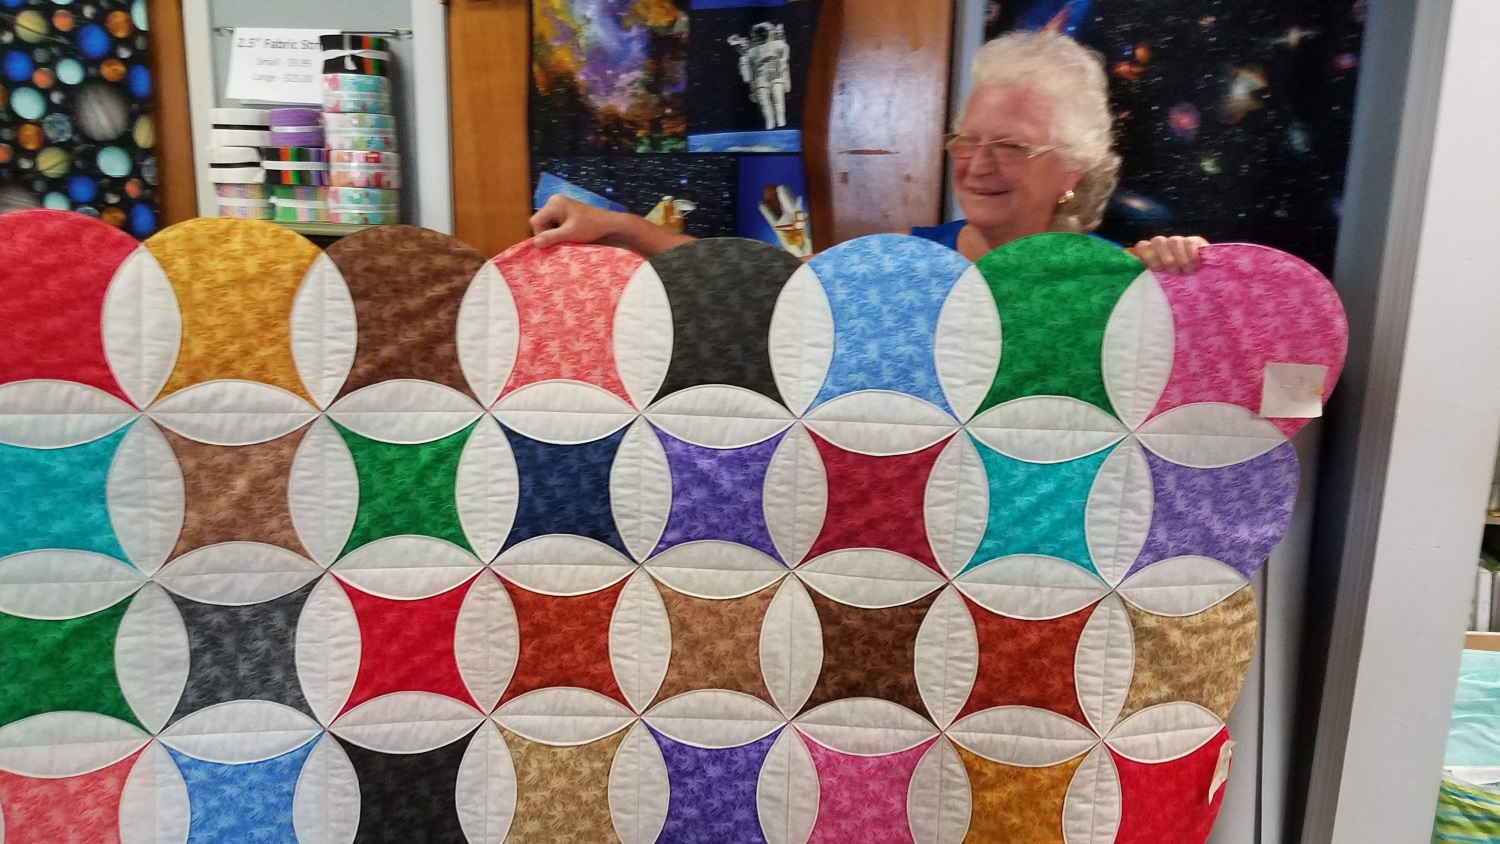 Marjorie Jordan of Dade City, made this beautiful circle quilt using our POM-POM pack